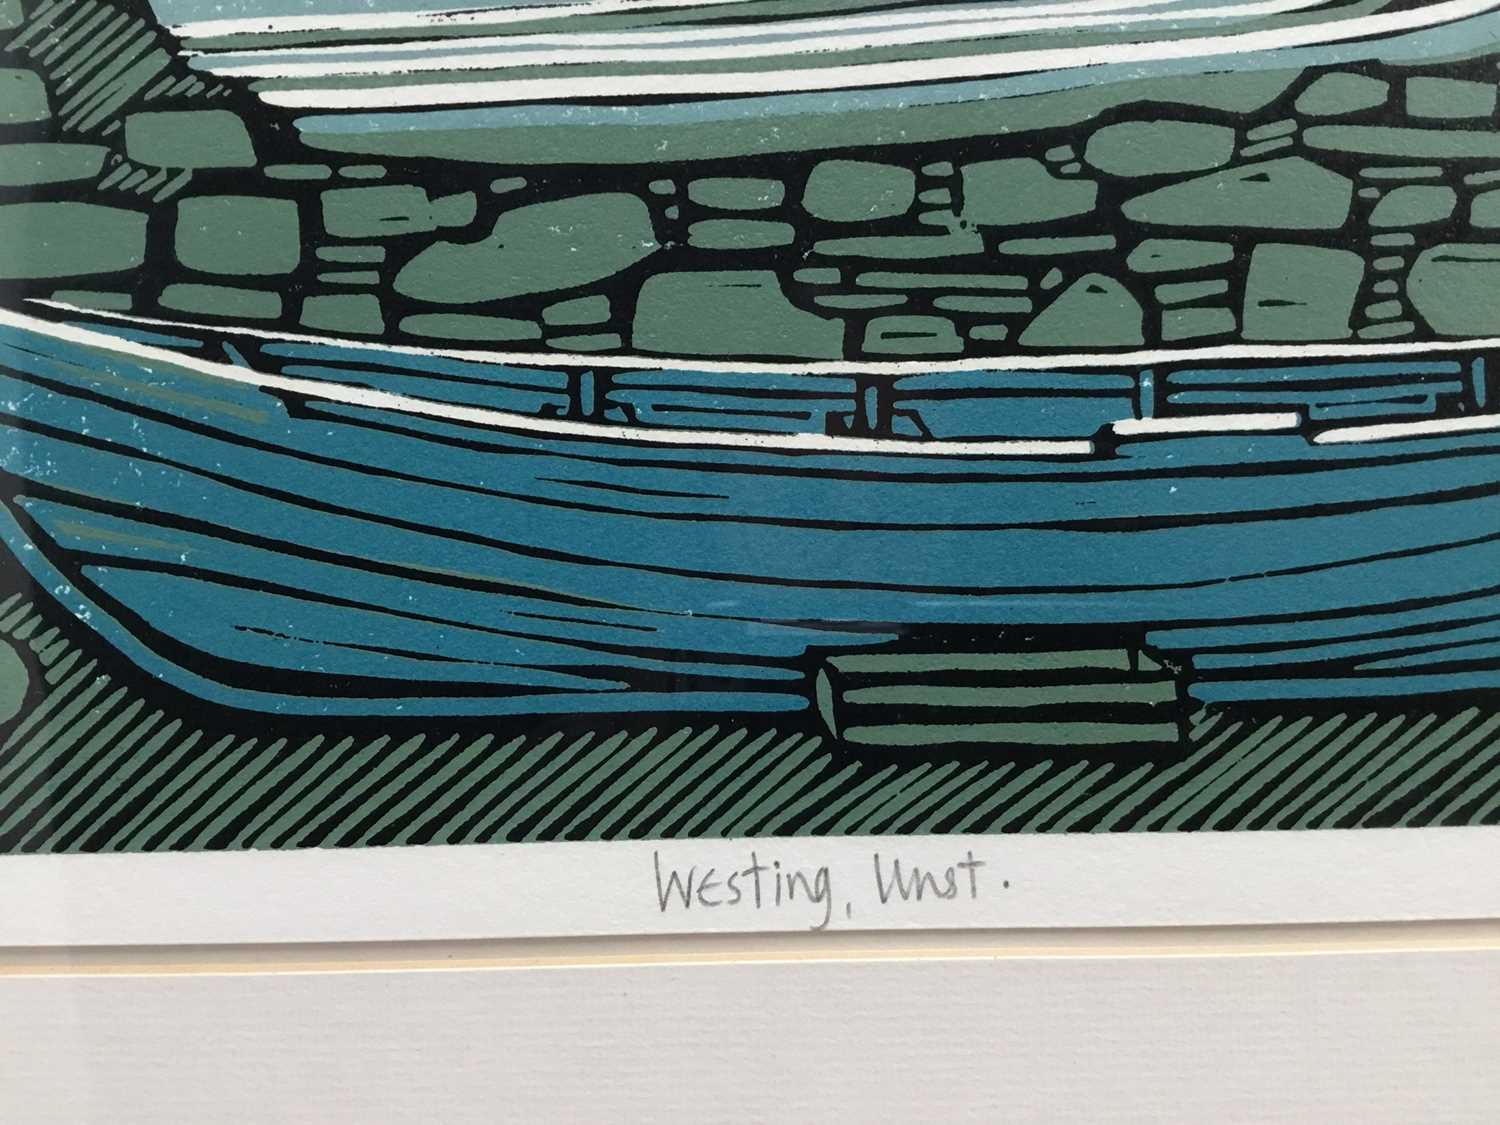 Nicholas Barnham (b. 1939) linocut in colours, Westing Unst, signed and numbered 46/50 A/P, 20 x 36c - Image 3 of 7